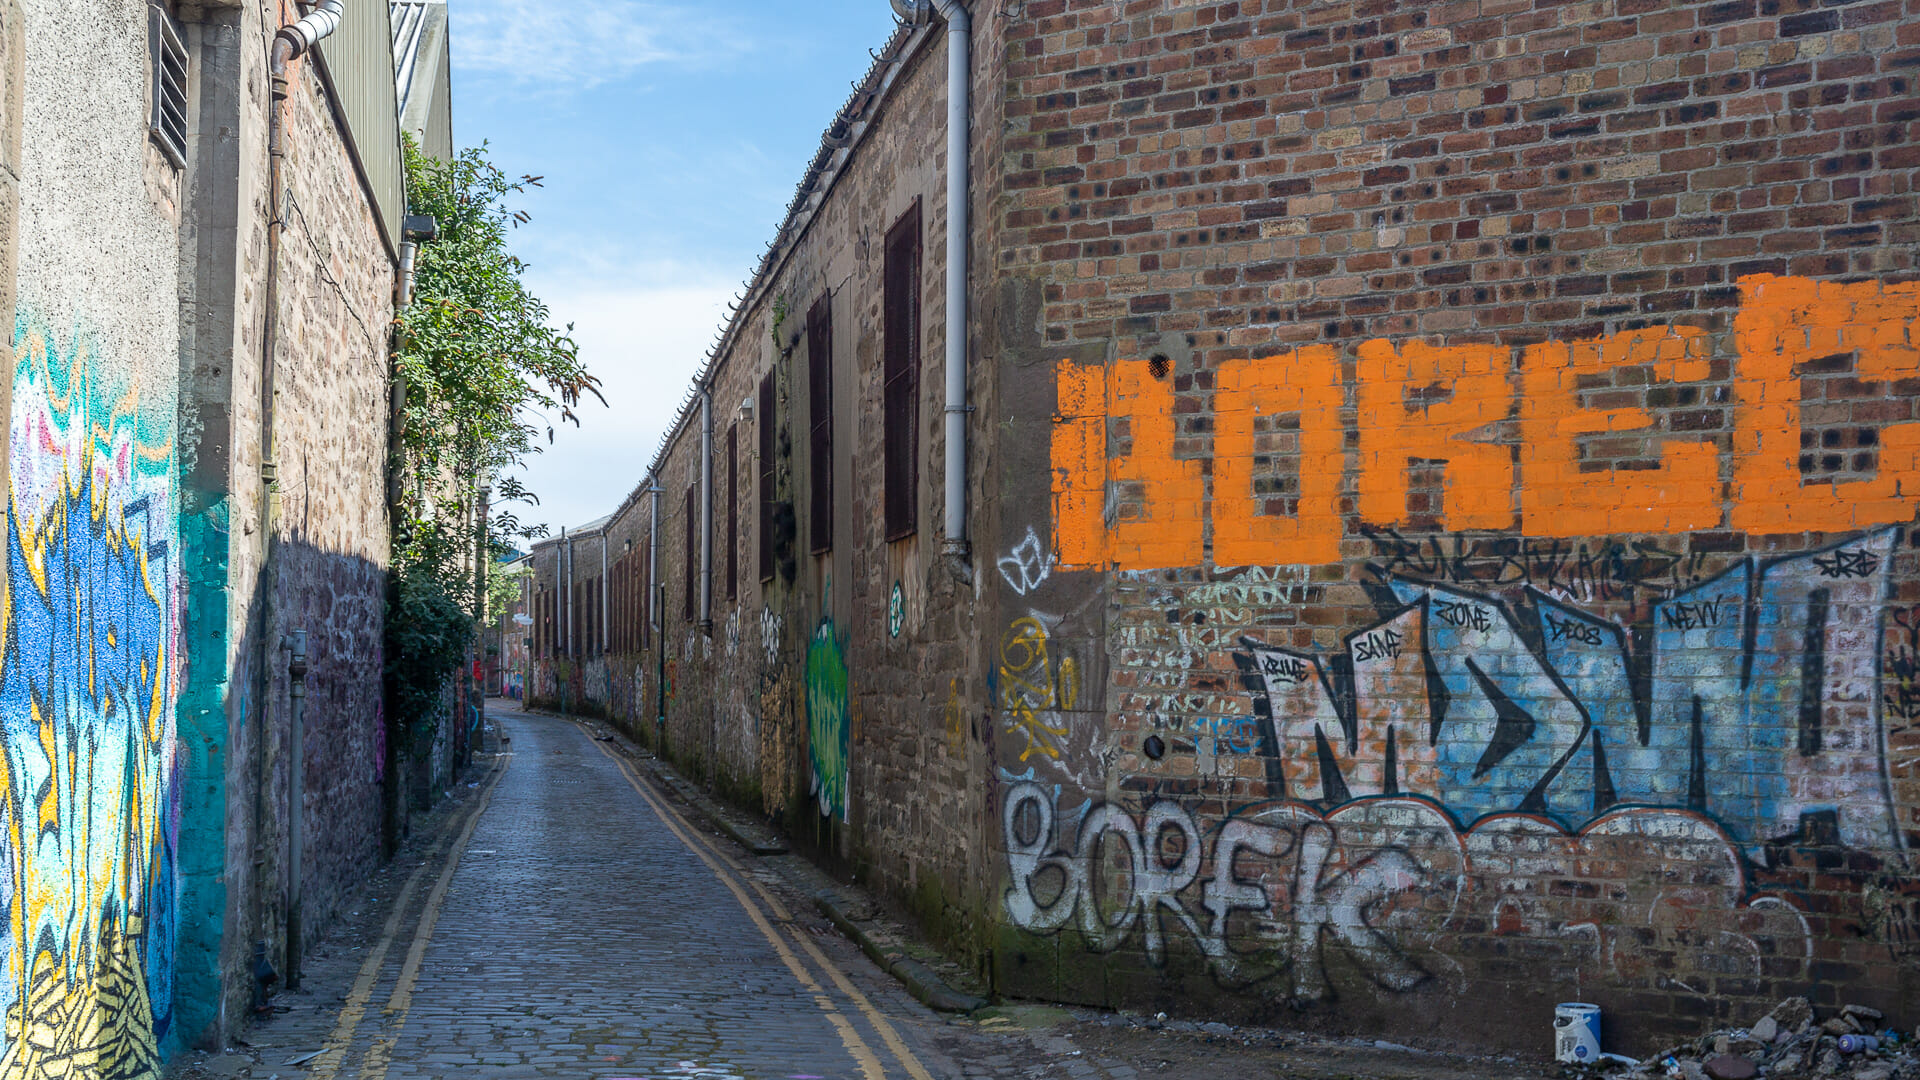 Graffiti-Gasse in Dundee